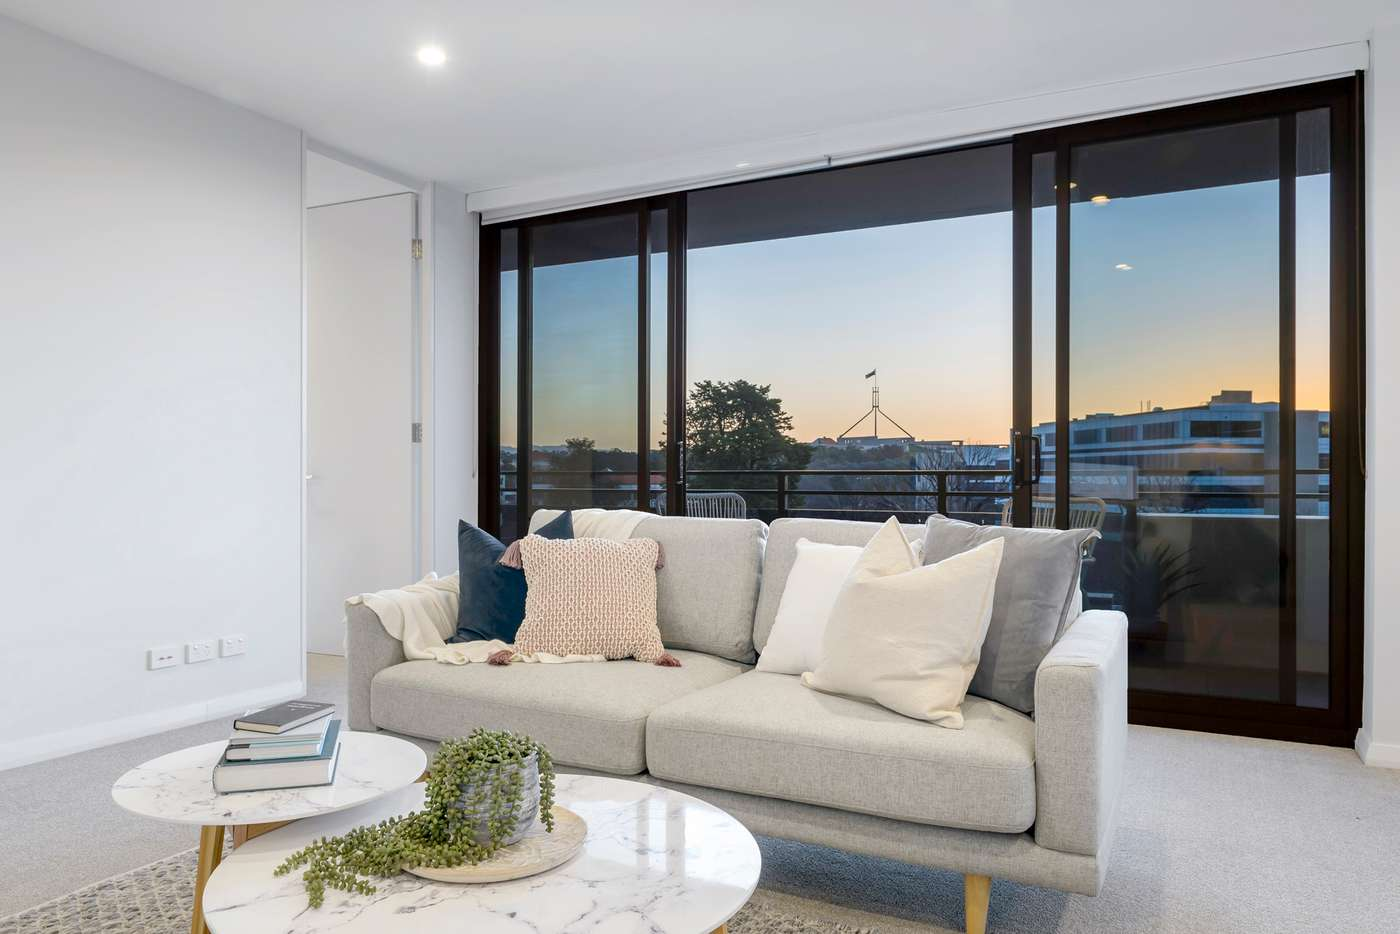 Fifth view of Homely apartment listing, 49/44 Macquarie Street, Barton ACT 2600